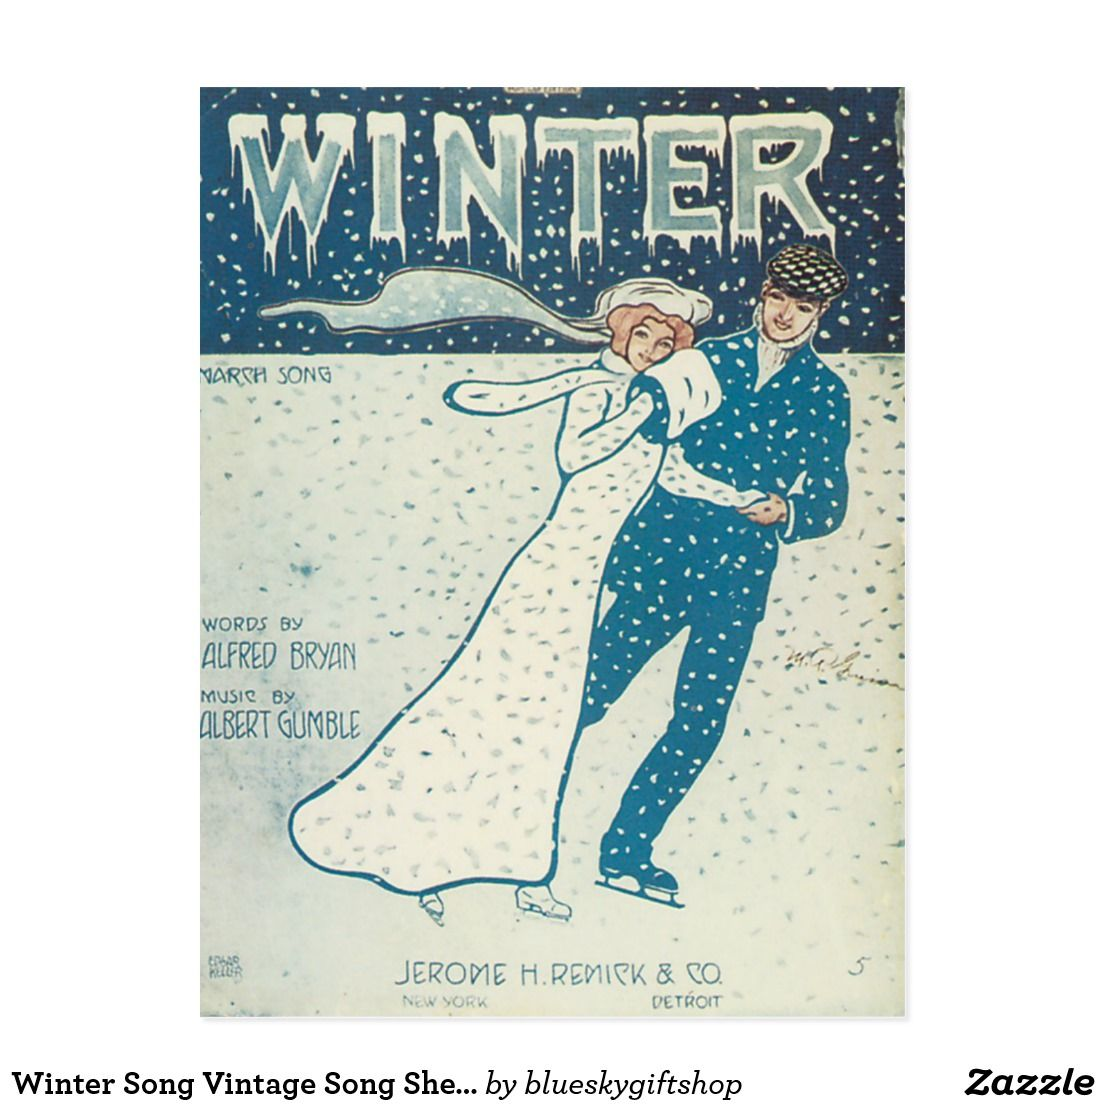 Winter Song Vintage Song Sheet Music Art Postcard | Zazzle.com #vintagesheetmusic